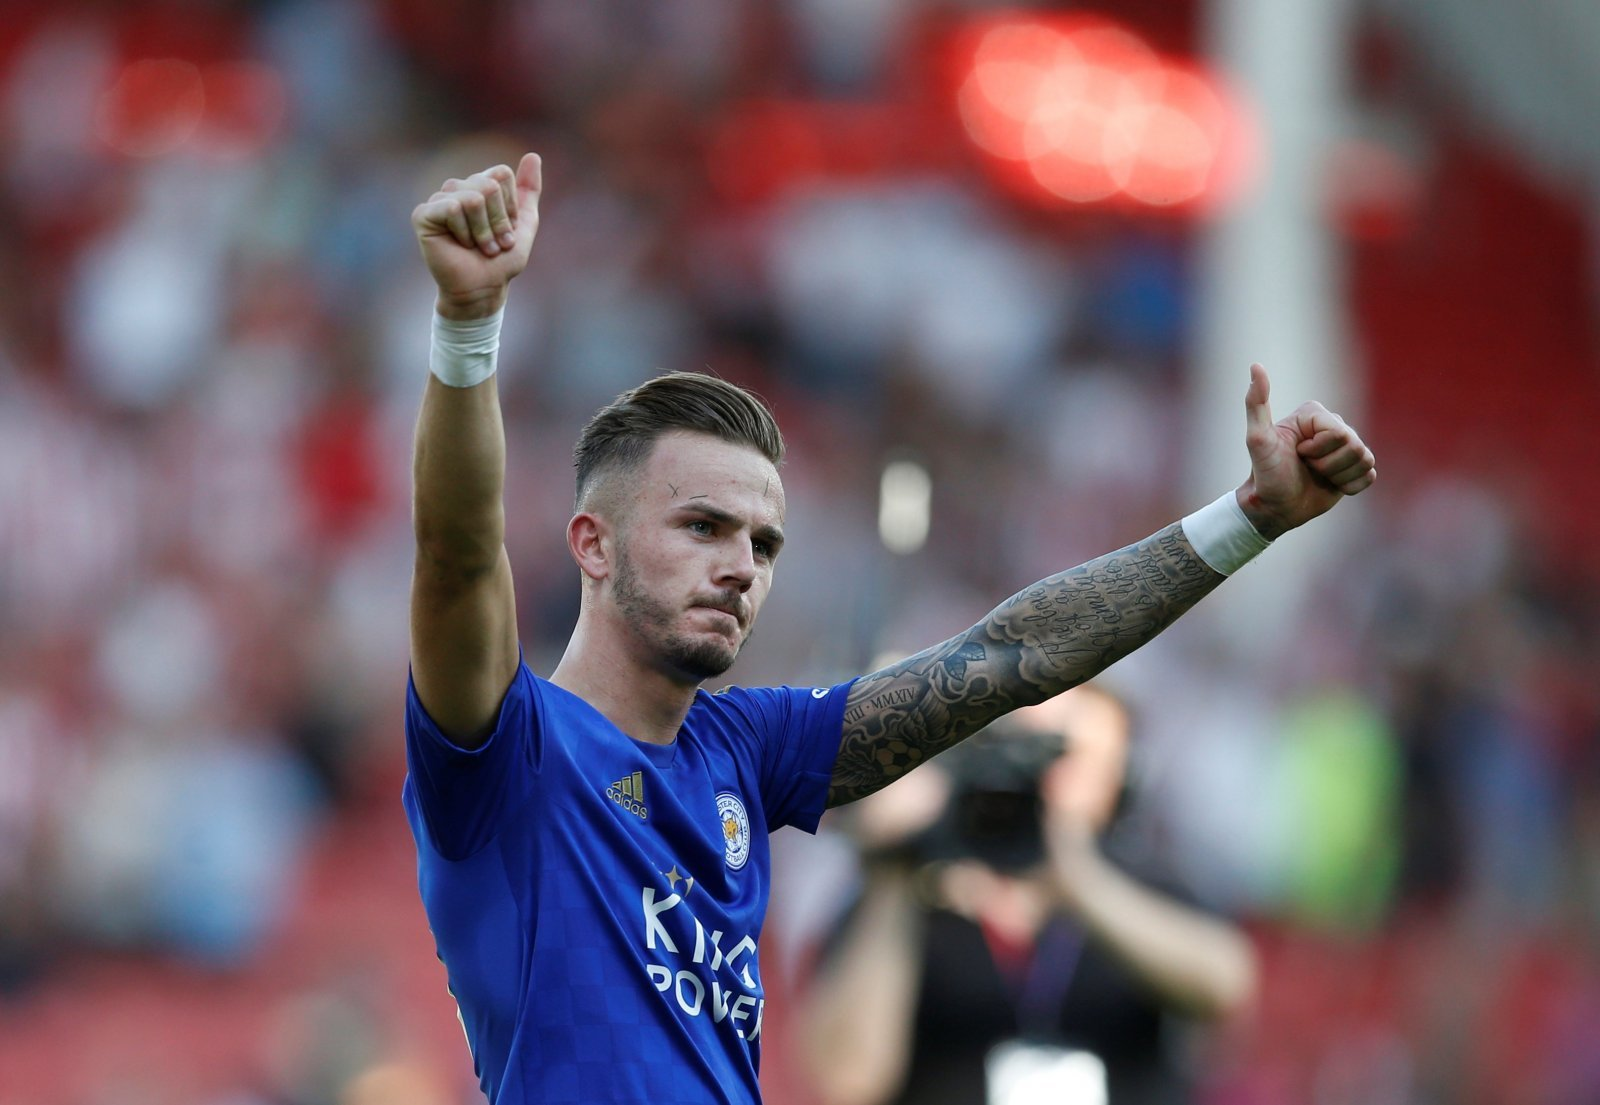 Leicester City: Fans show love for John Percy after bringing good James Maddison news